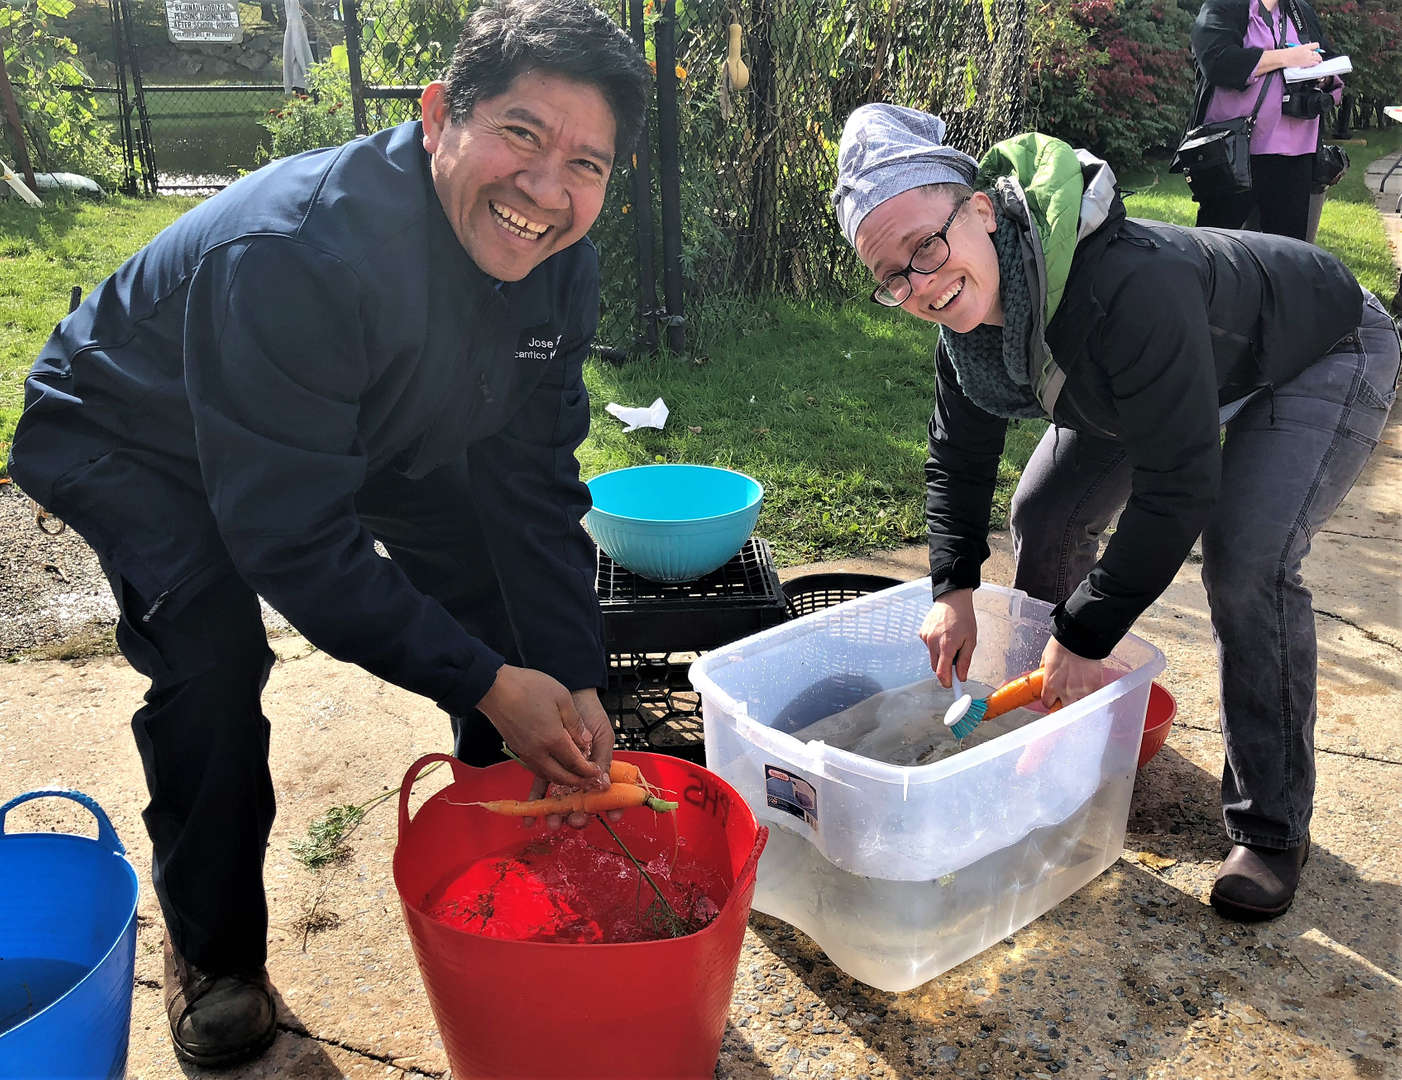 Gardener Jose Zamora and Chef Kassie Arcate clean carrots in buckets of water.